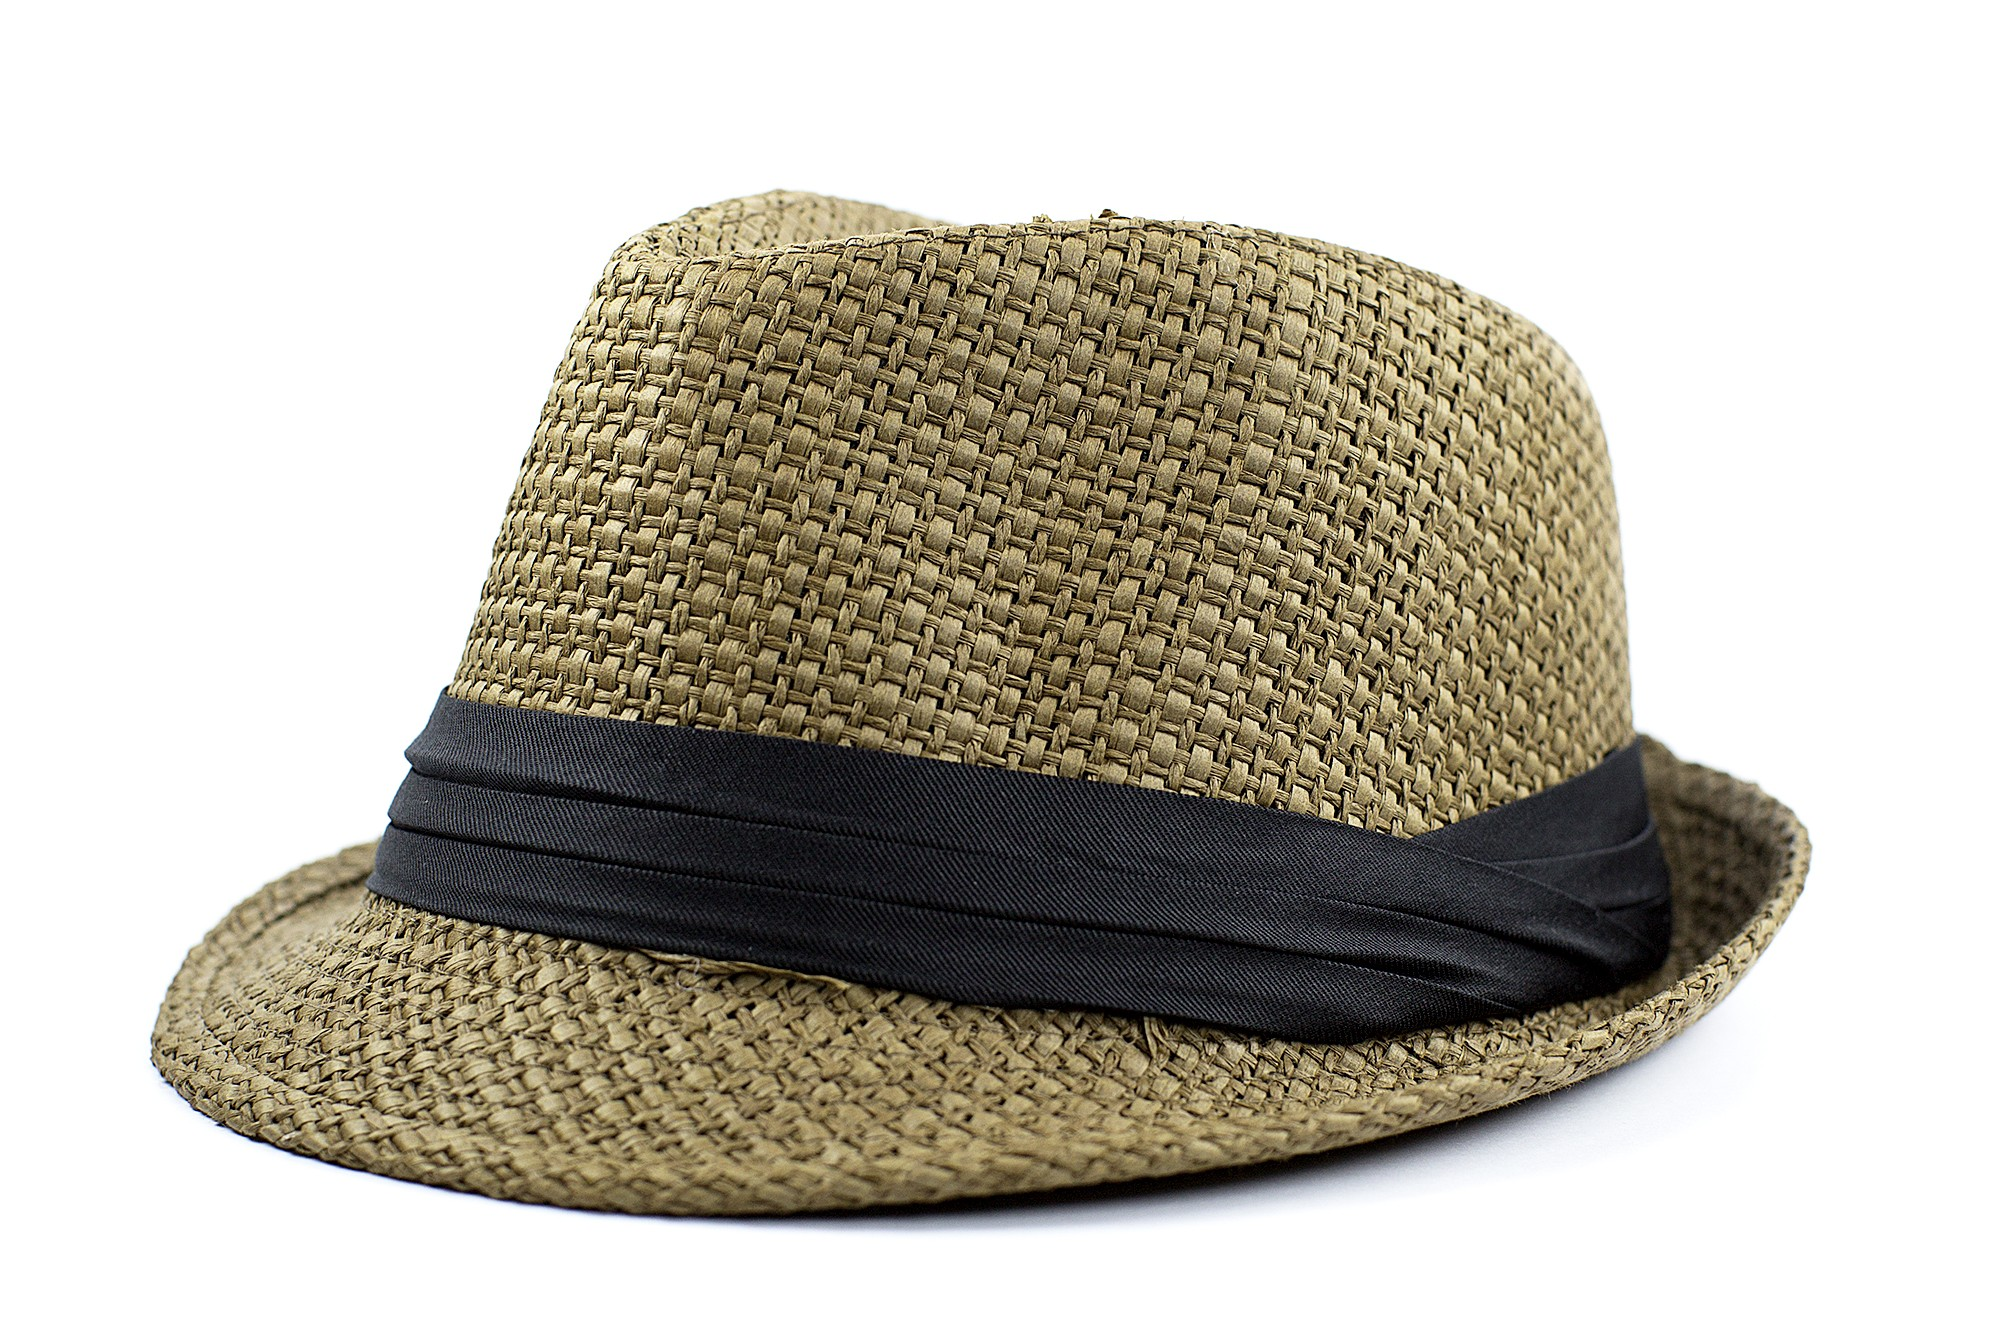 The Panama Hat Panama Hats are famous worldwide for their lightness, durability, Over Hat Models · Great Discounts · Incredible Selection · Premium Brands.